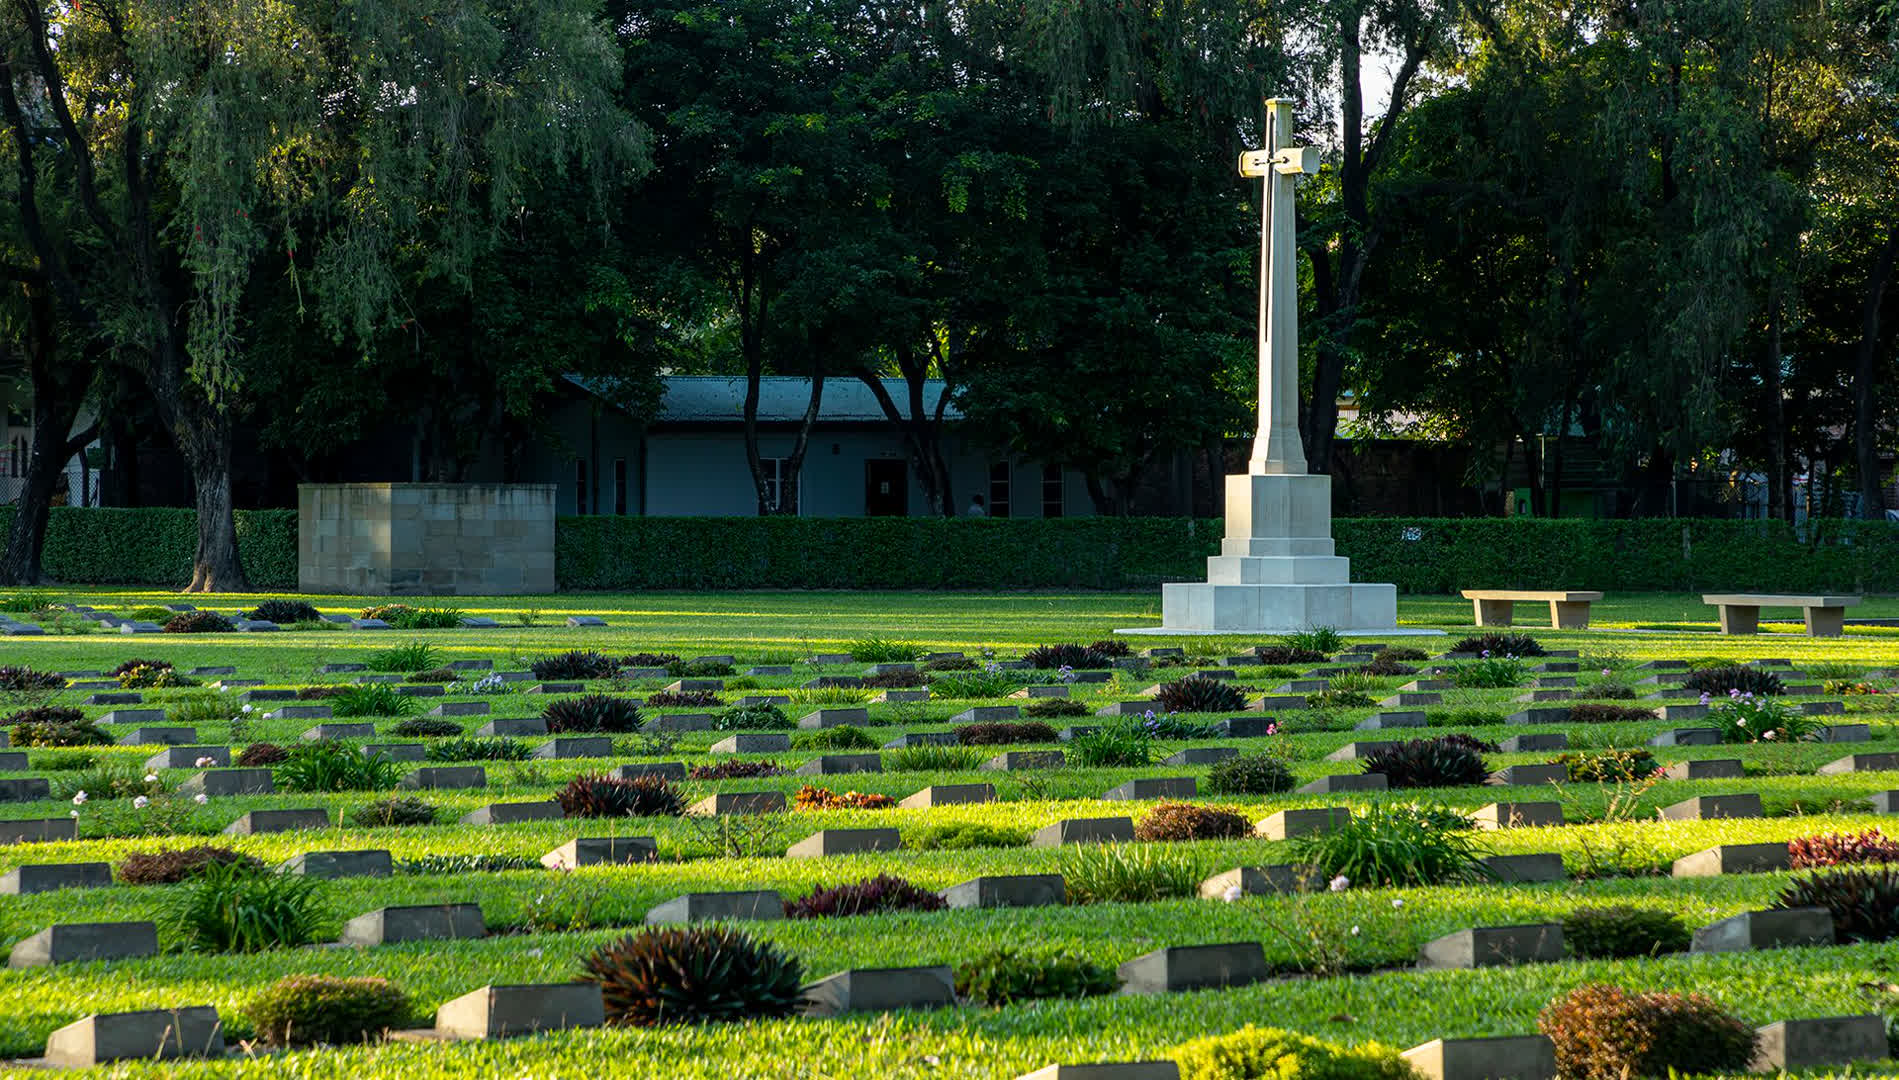 Battles of Imphal & Kohima: A Time to Heal